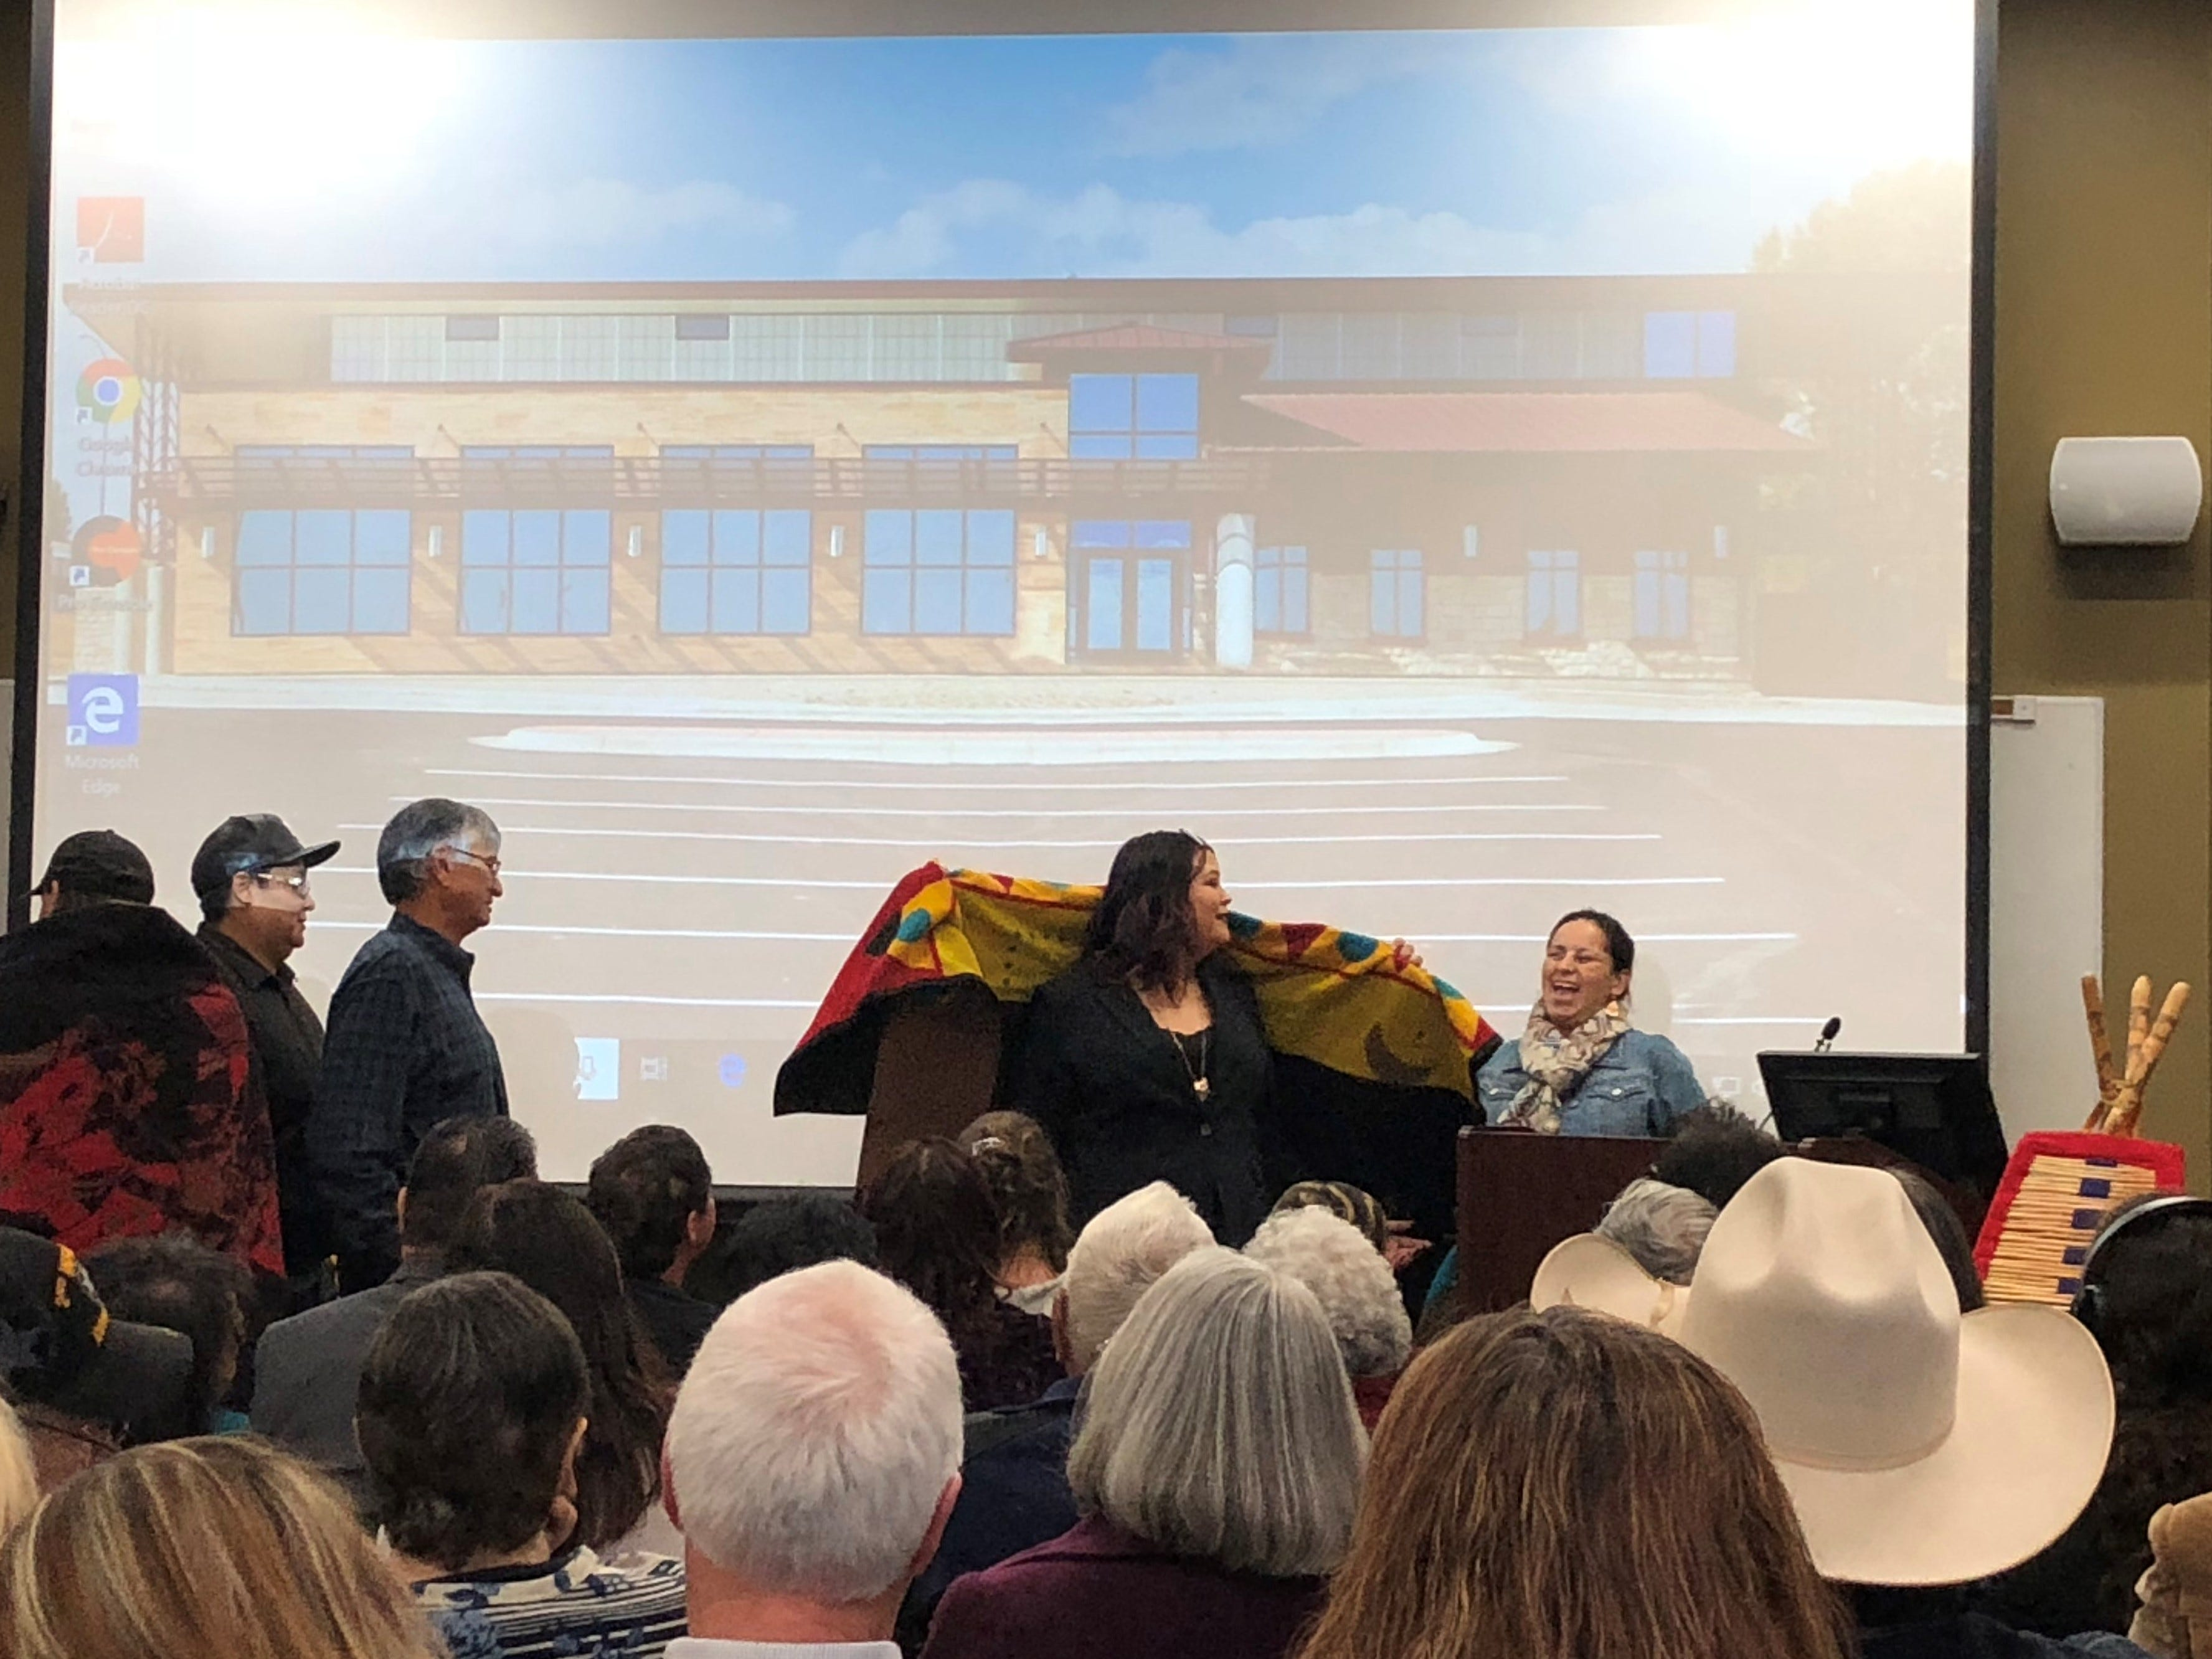 People gather at the Blackfeet Community College to honor Elouise Cobell with the naming of a new building.